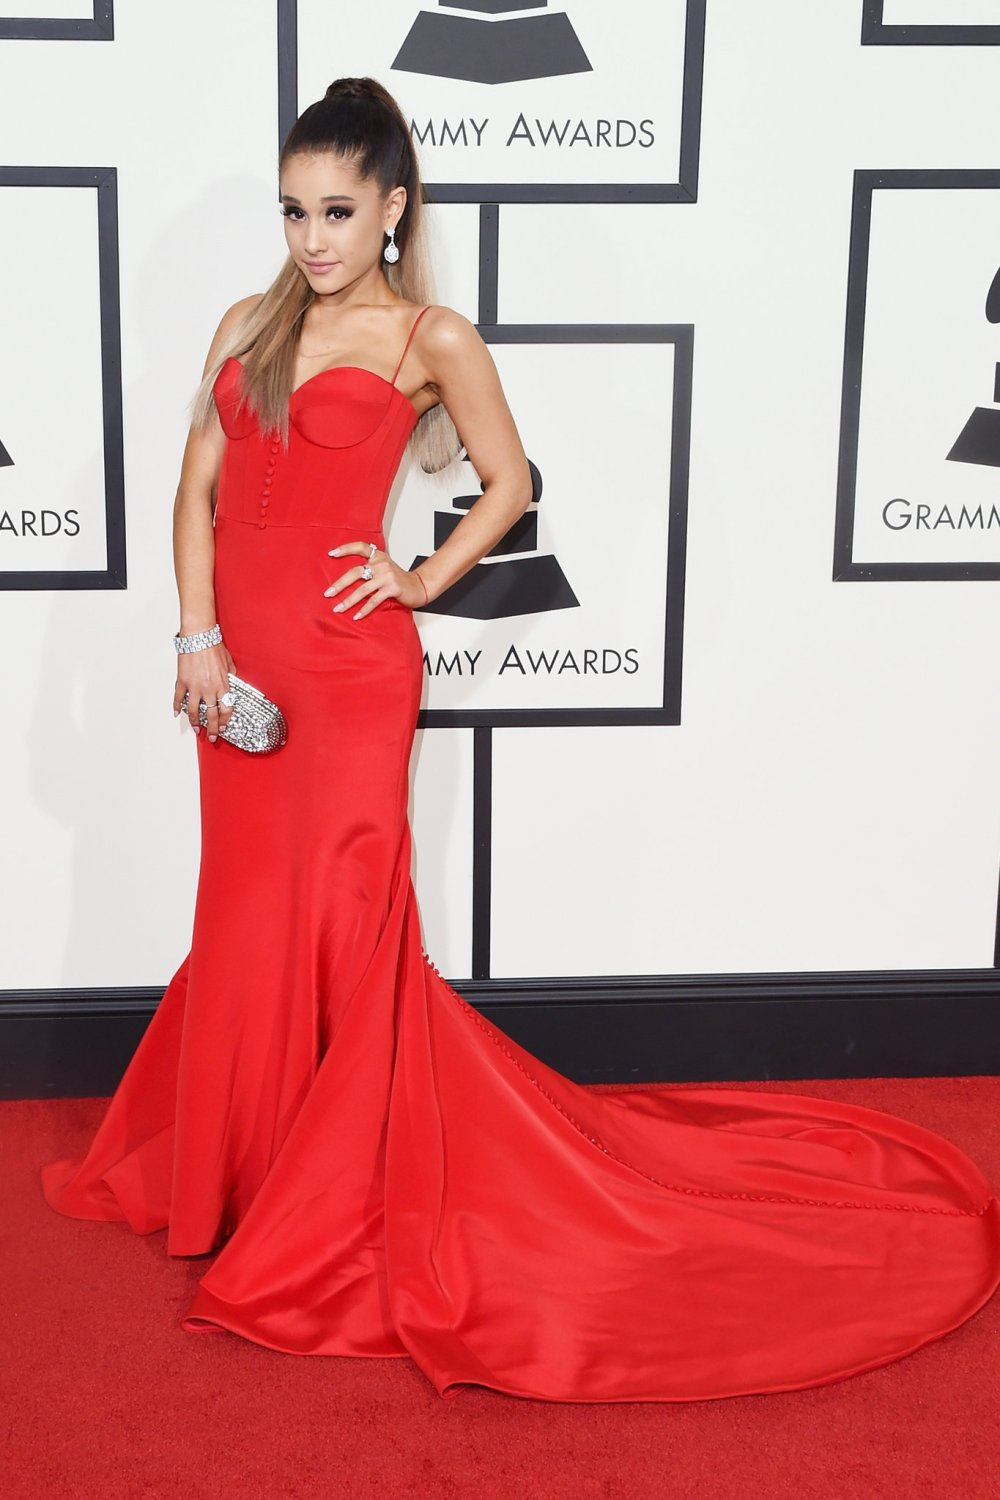 grammys-red-carpet-37692-ariana-grande-superJumbo-v2.jpg